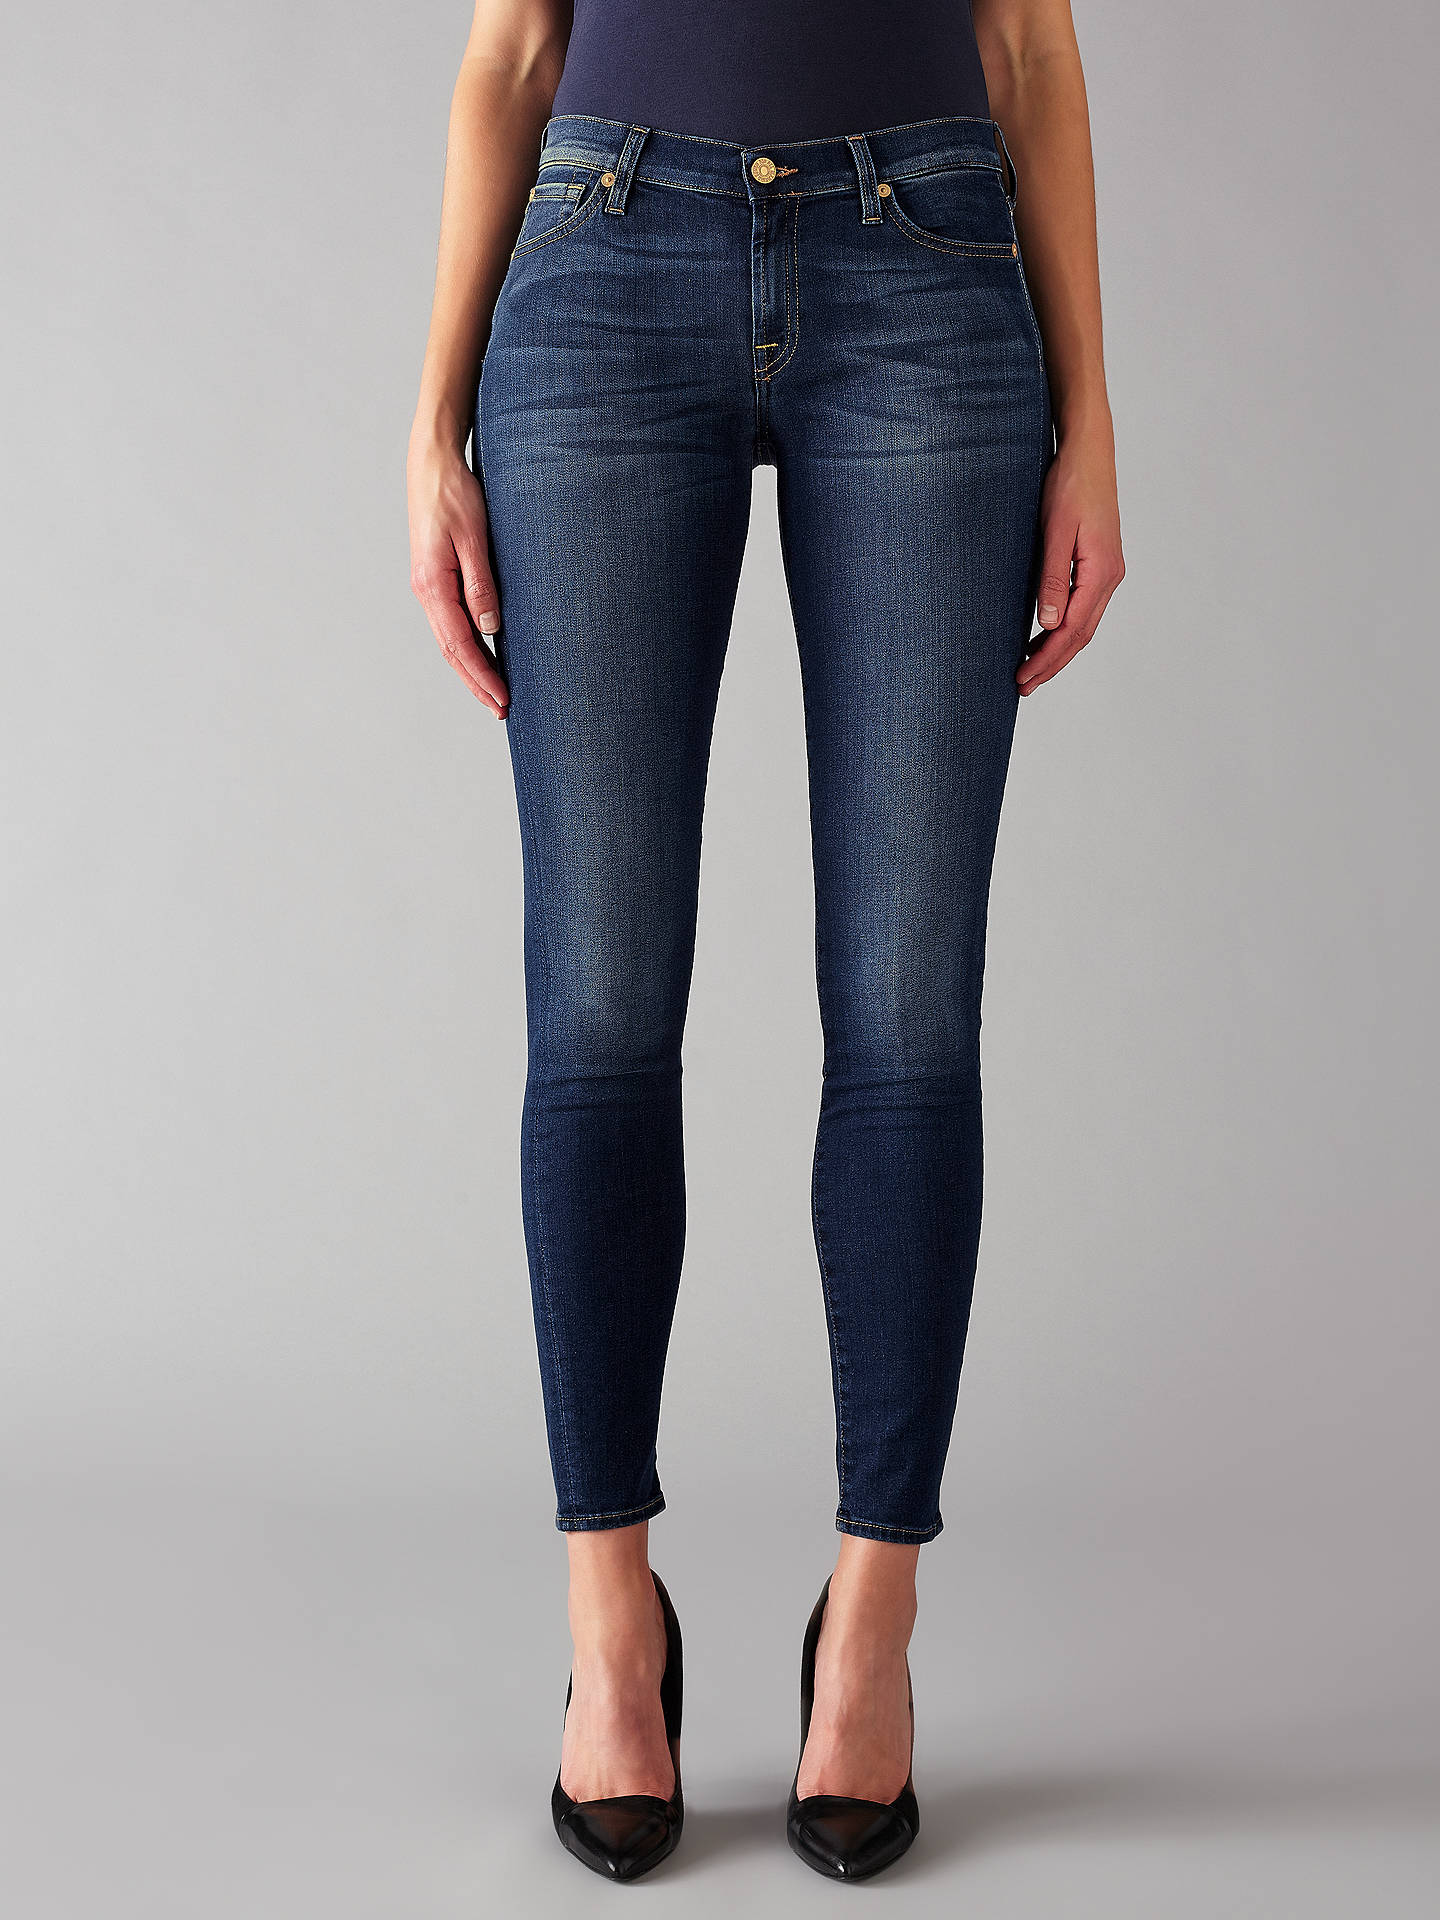 Buy7 For All Mankind The Skinny B(air) Jeans, Duchess, 26 Online at johnlewis.com